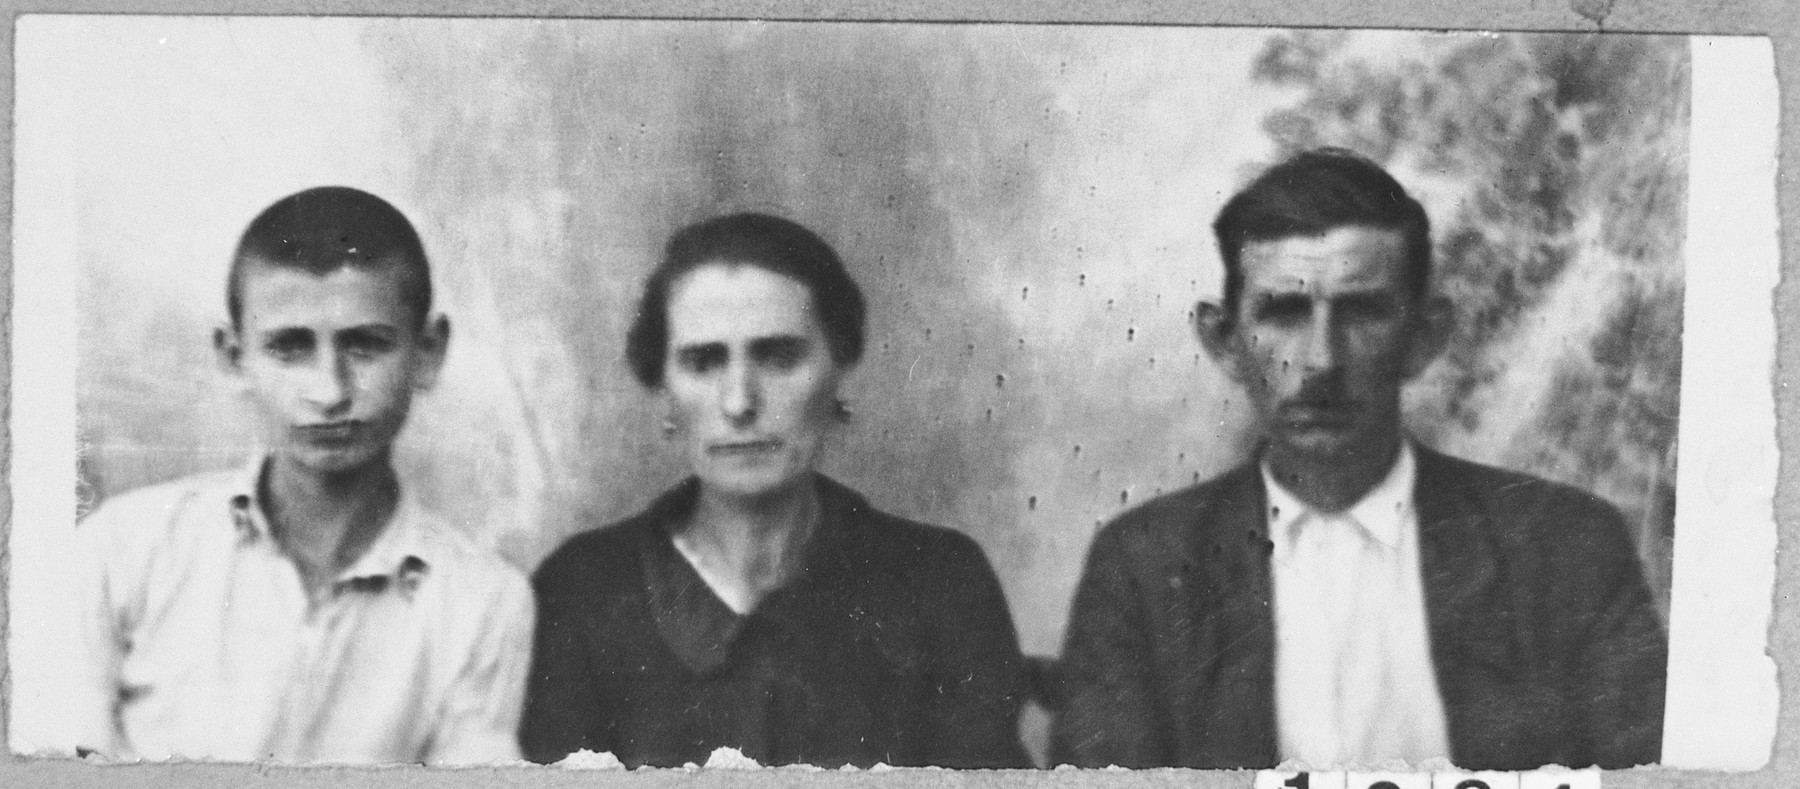 Portrait of Rachamin Hasson, his wife, Lea, and his son, David.  Rachamin was a rag dealer and David, a student.  They lived at Davidova 13 in Bitola.